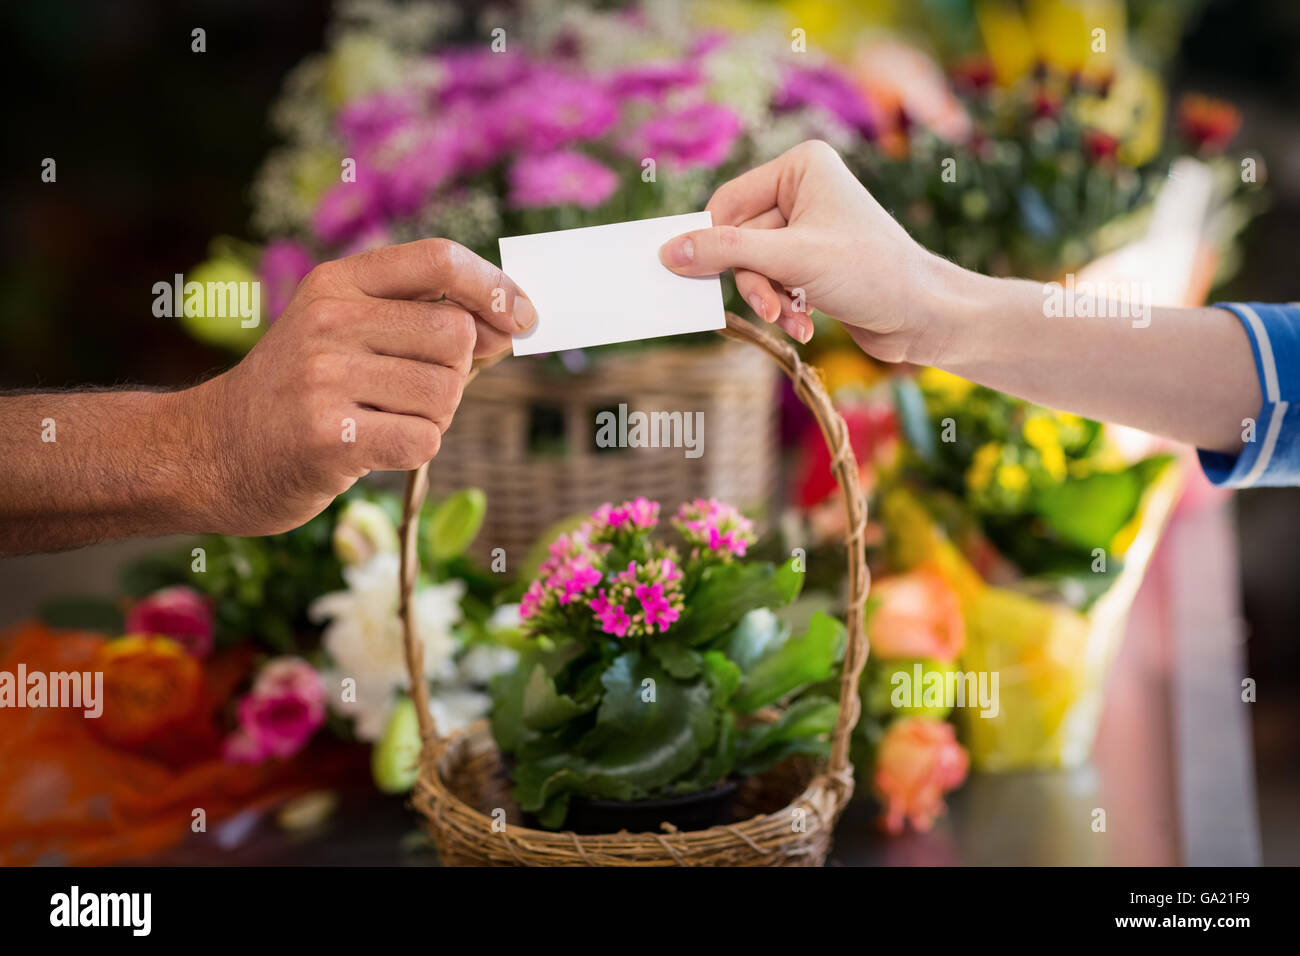 Florist giving visiting card to customer - Stock Image